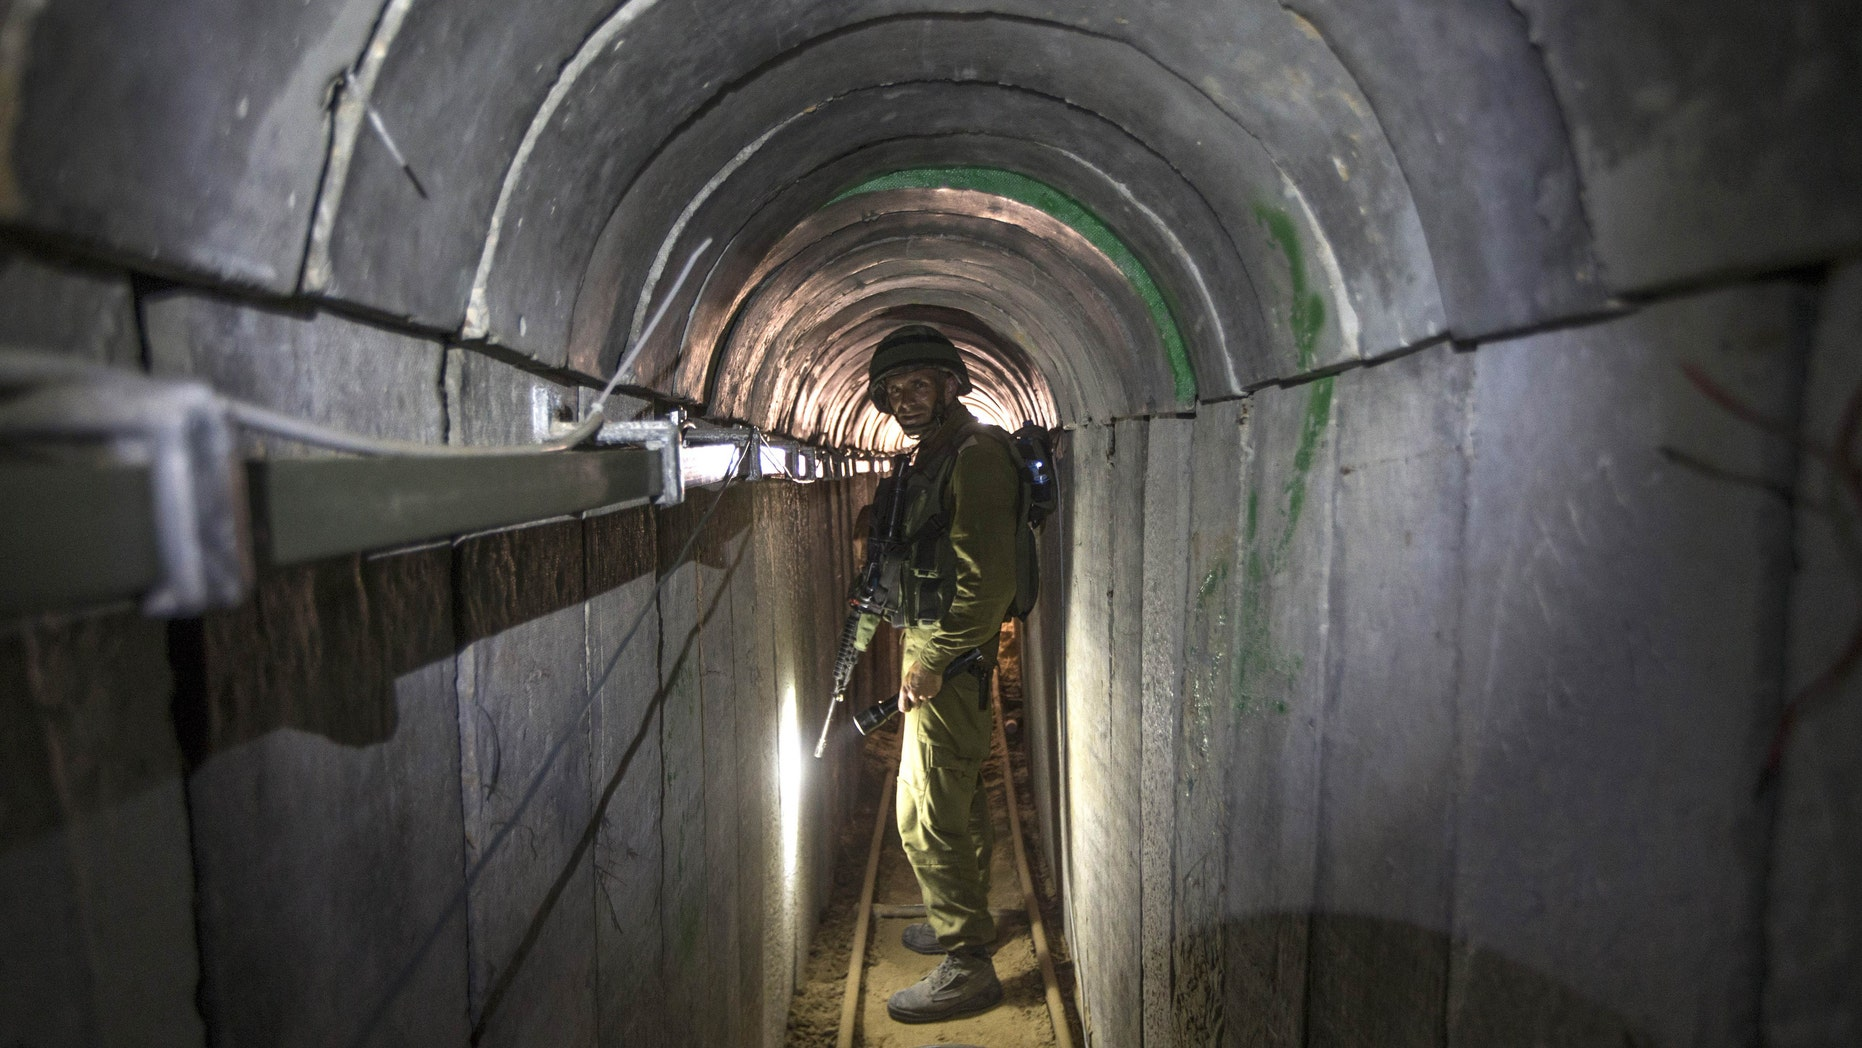 July 25, 2014: In this file photo, an Israeli army officer gives journalists a tour of a tunnel allegedly used by Palestinian militants for cross-border attacks, at the Israel-Gaza Border.